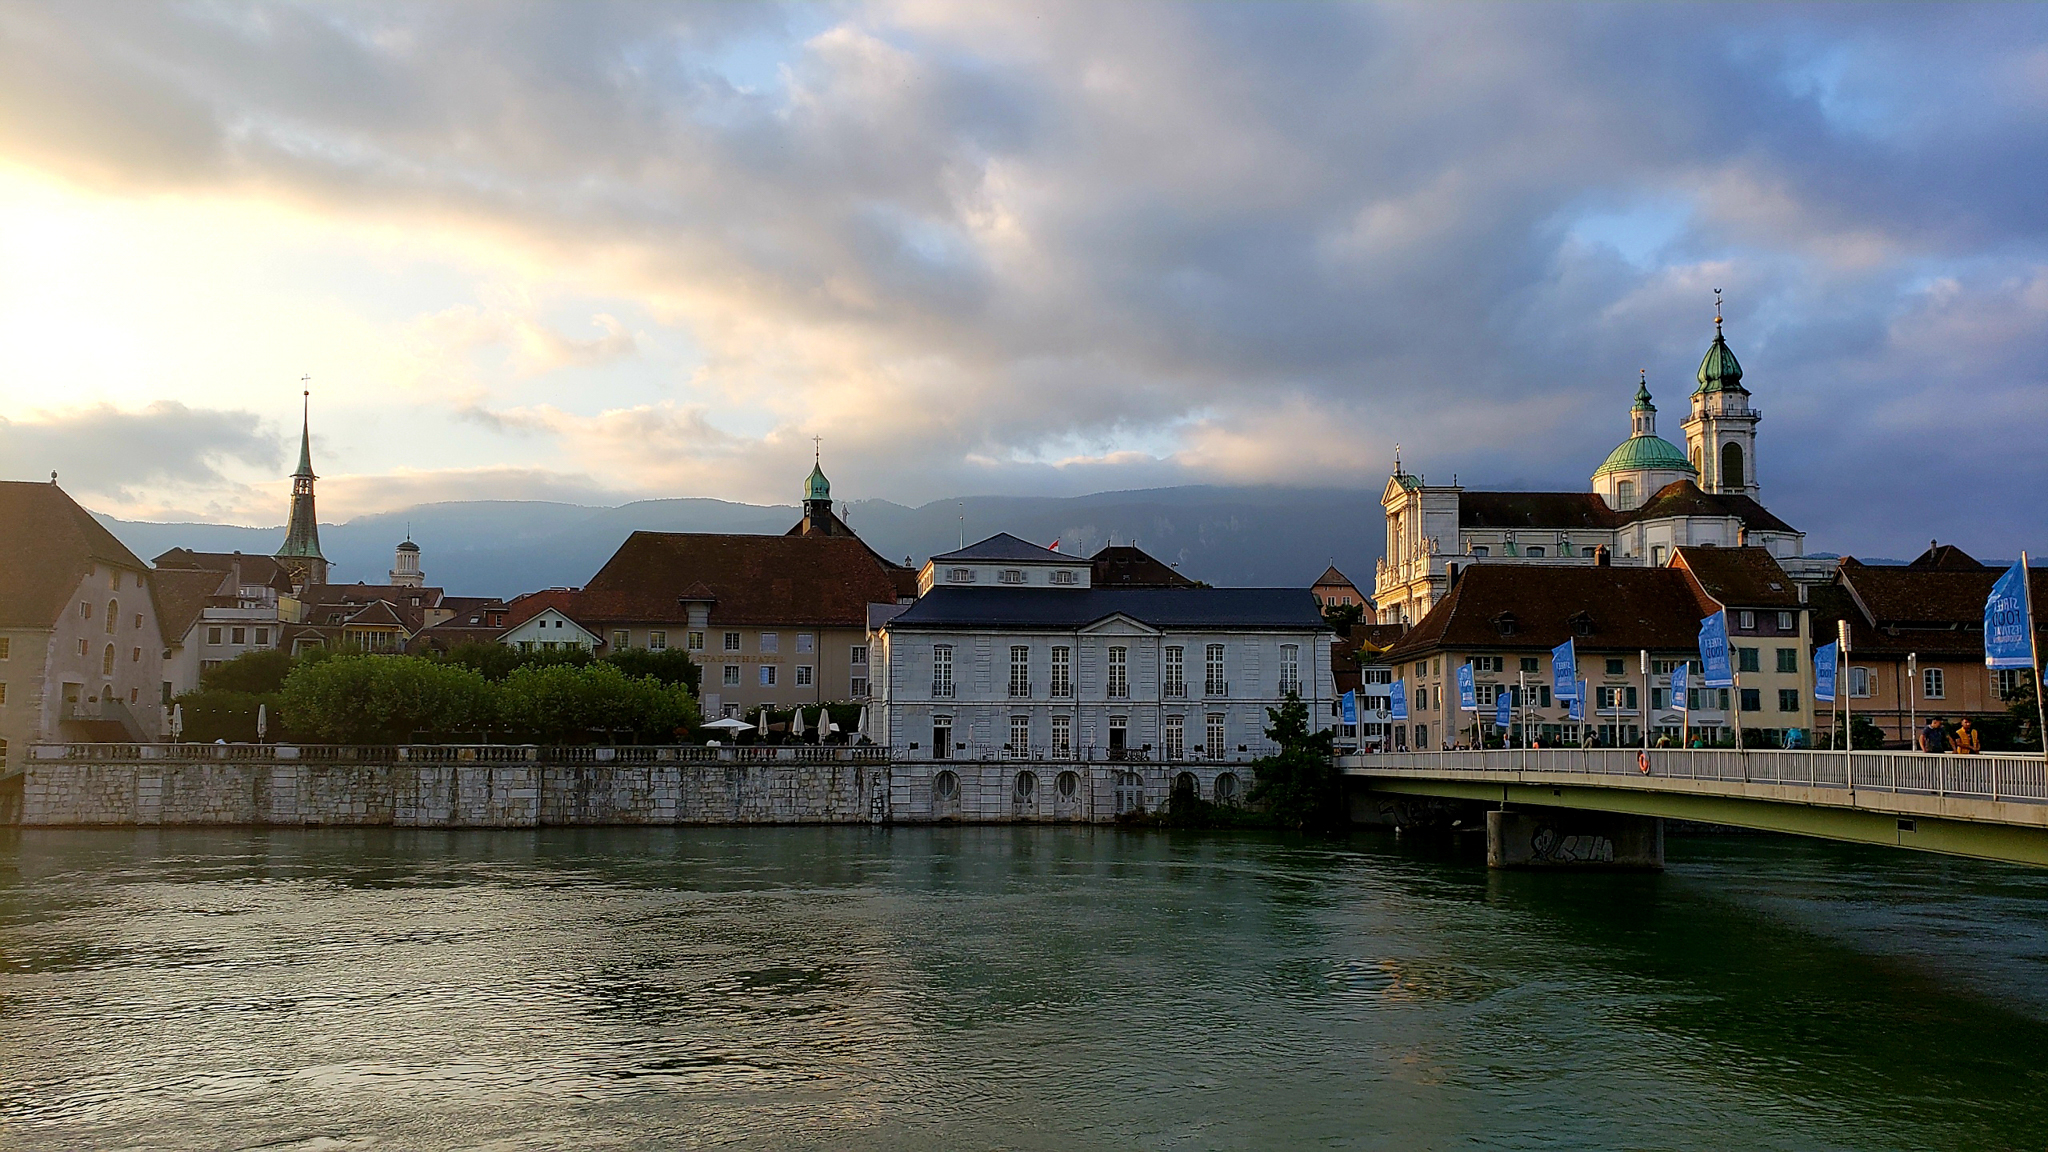 22-August-2019 Sunset in Solothurn